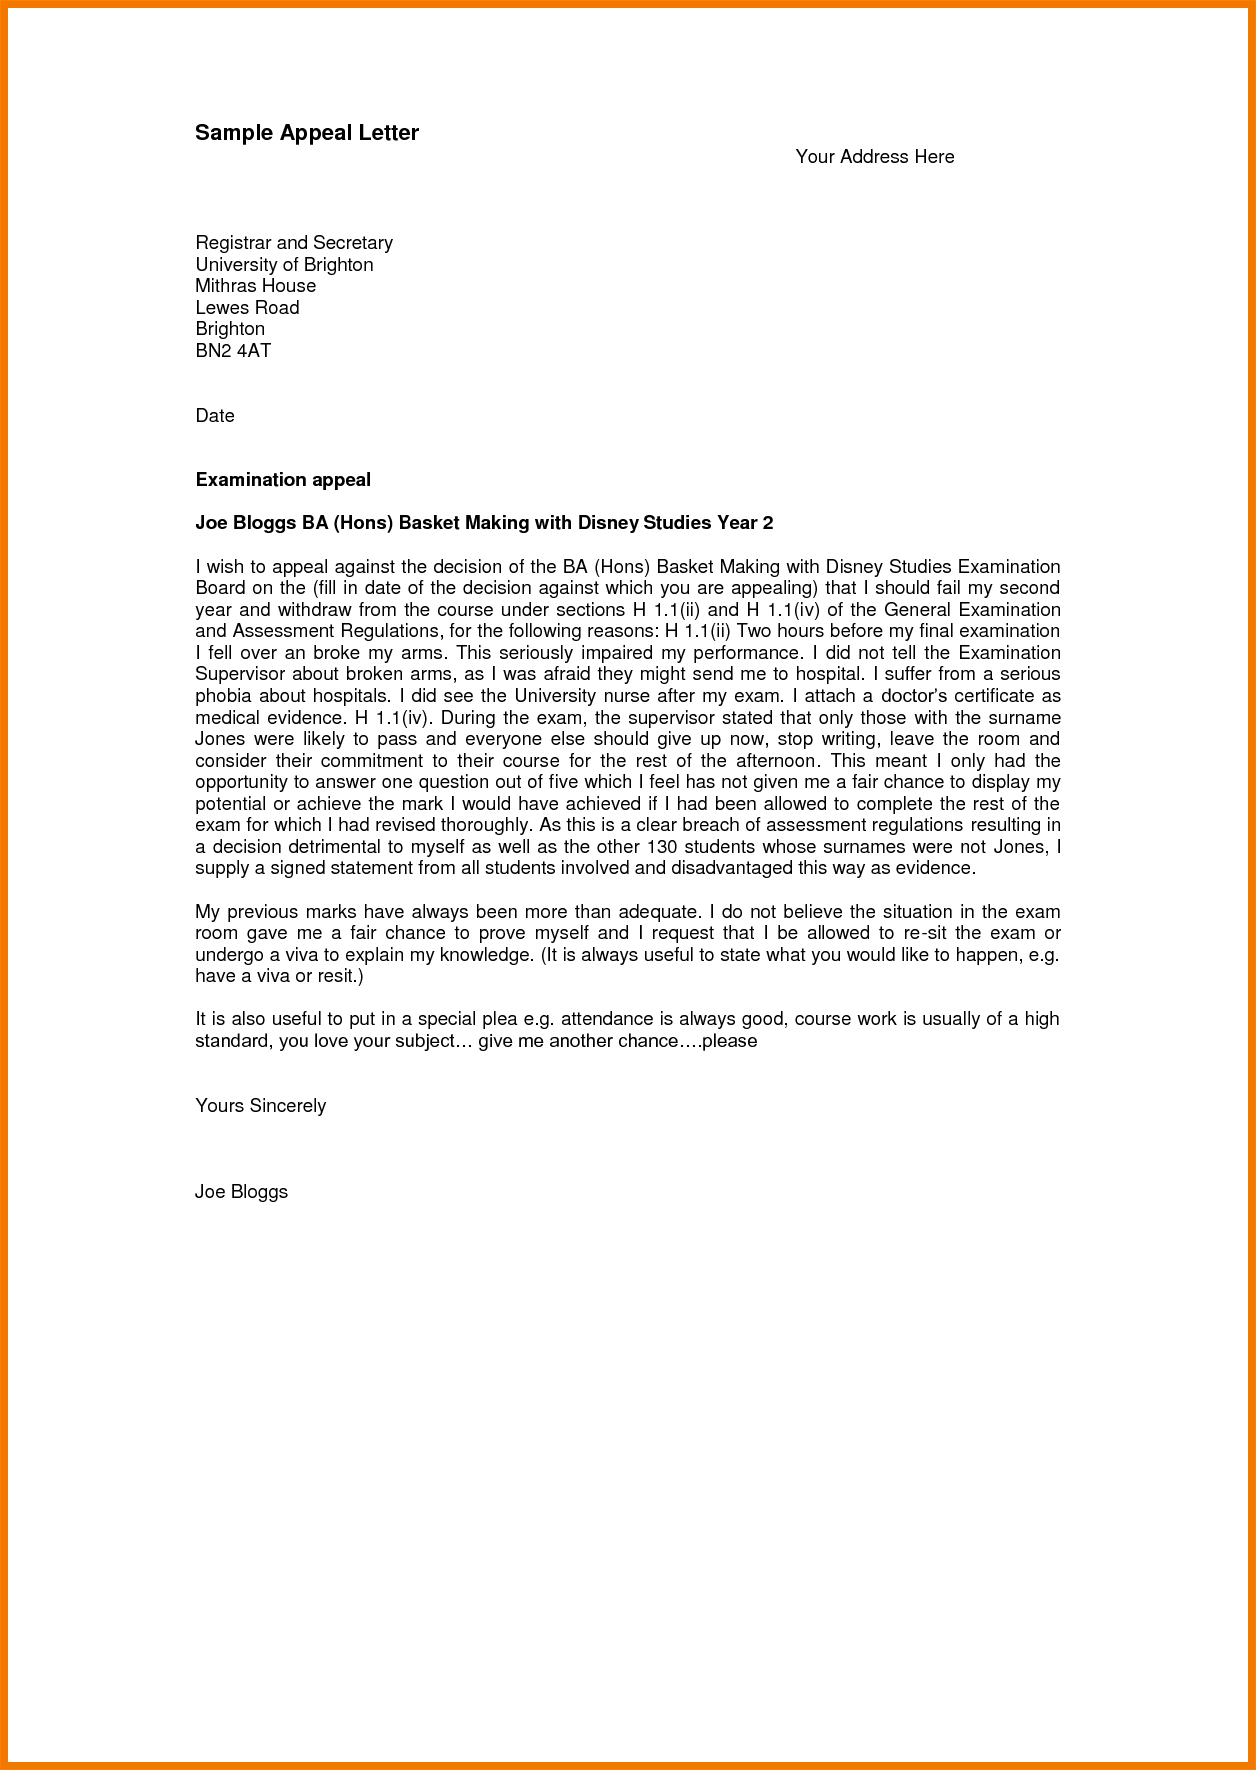 Sample Sap Appeal Letter  Geluidinbeeld Pertaining To Financial Aid Appeal Letter Template